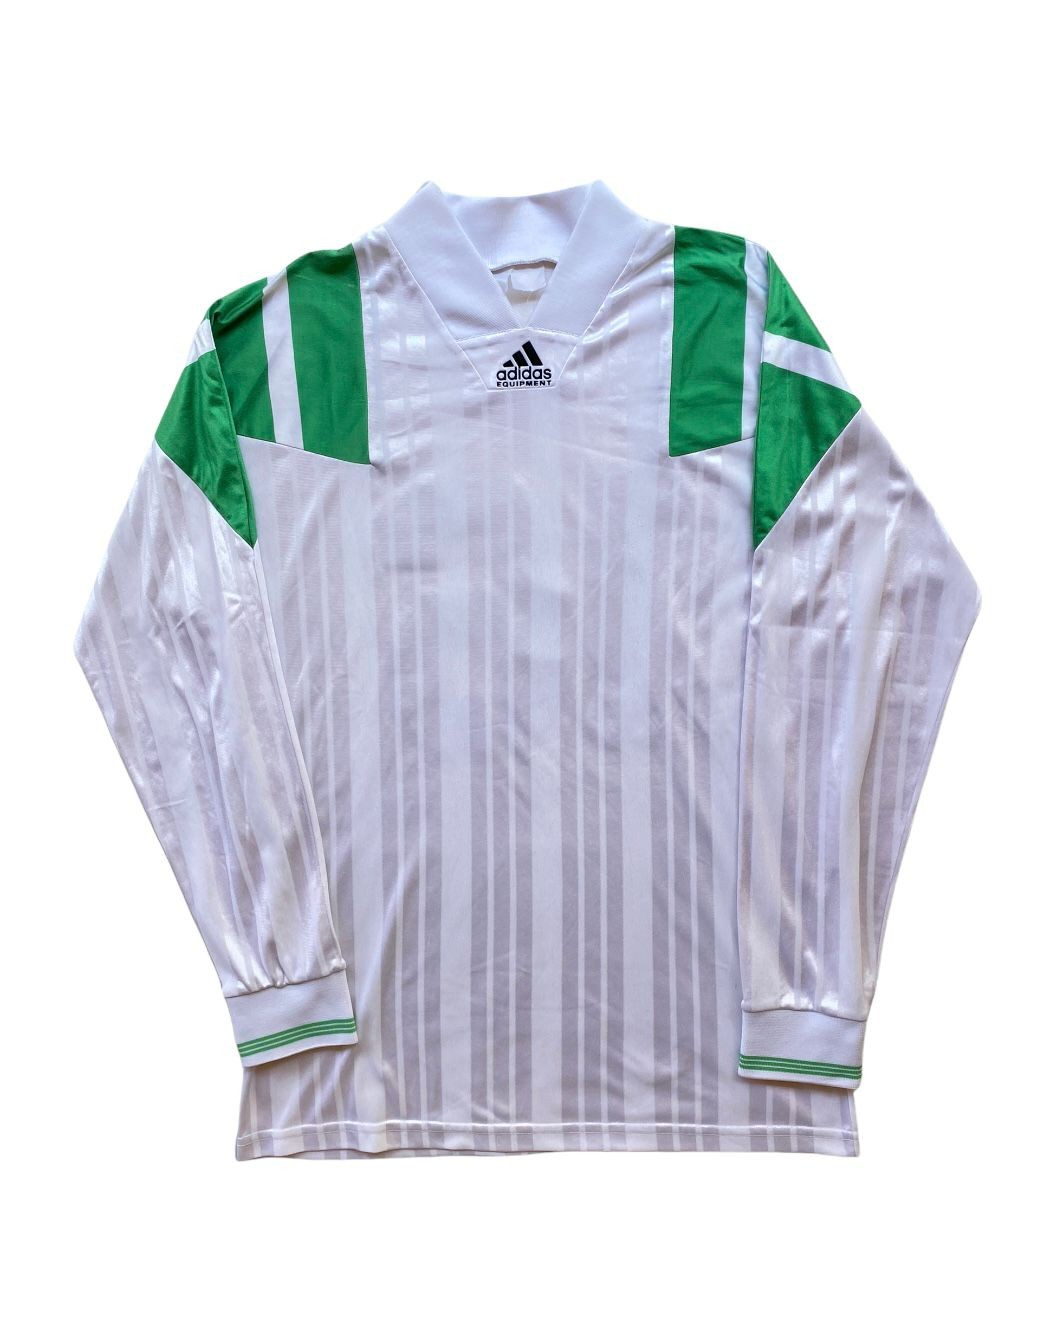 Adidas Equipment 90's Tample Jersey (L)